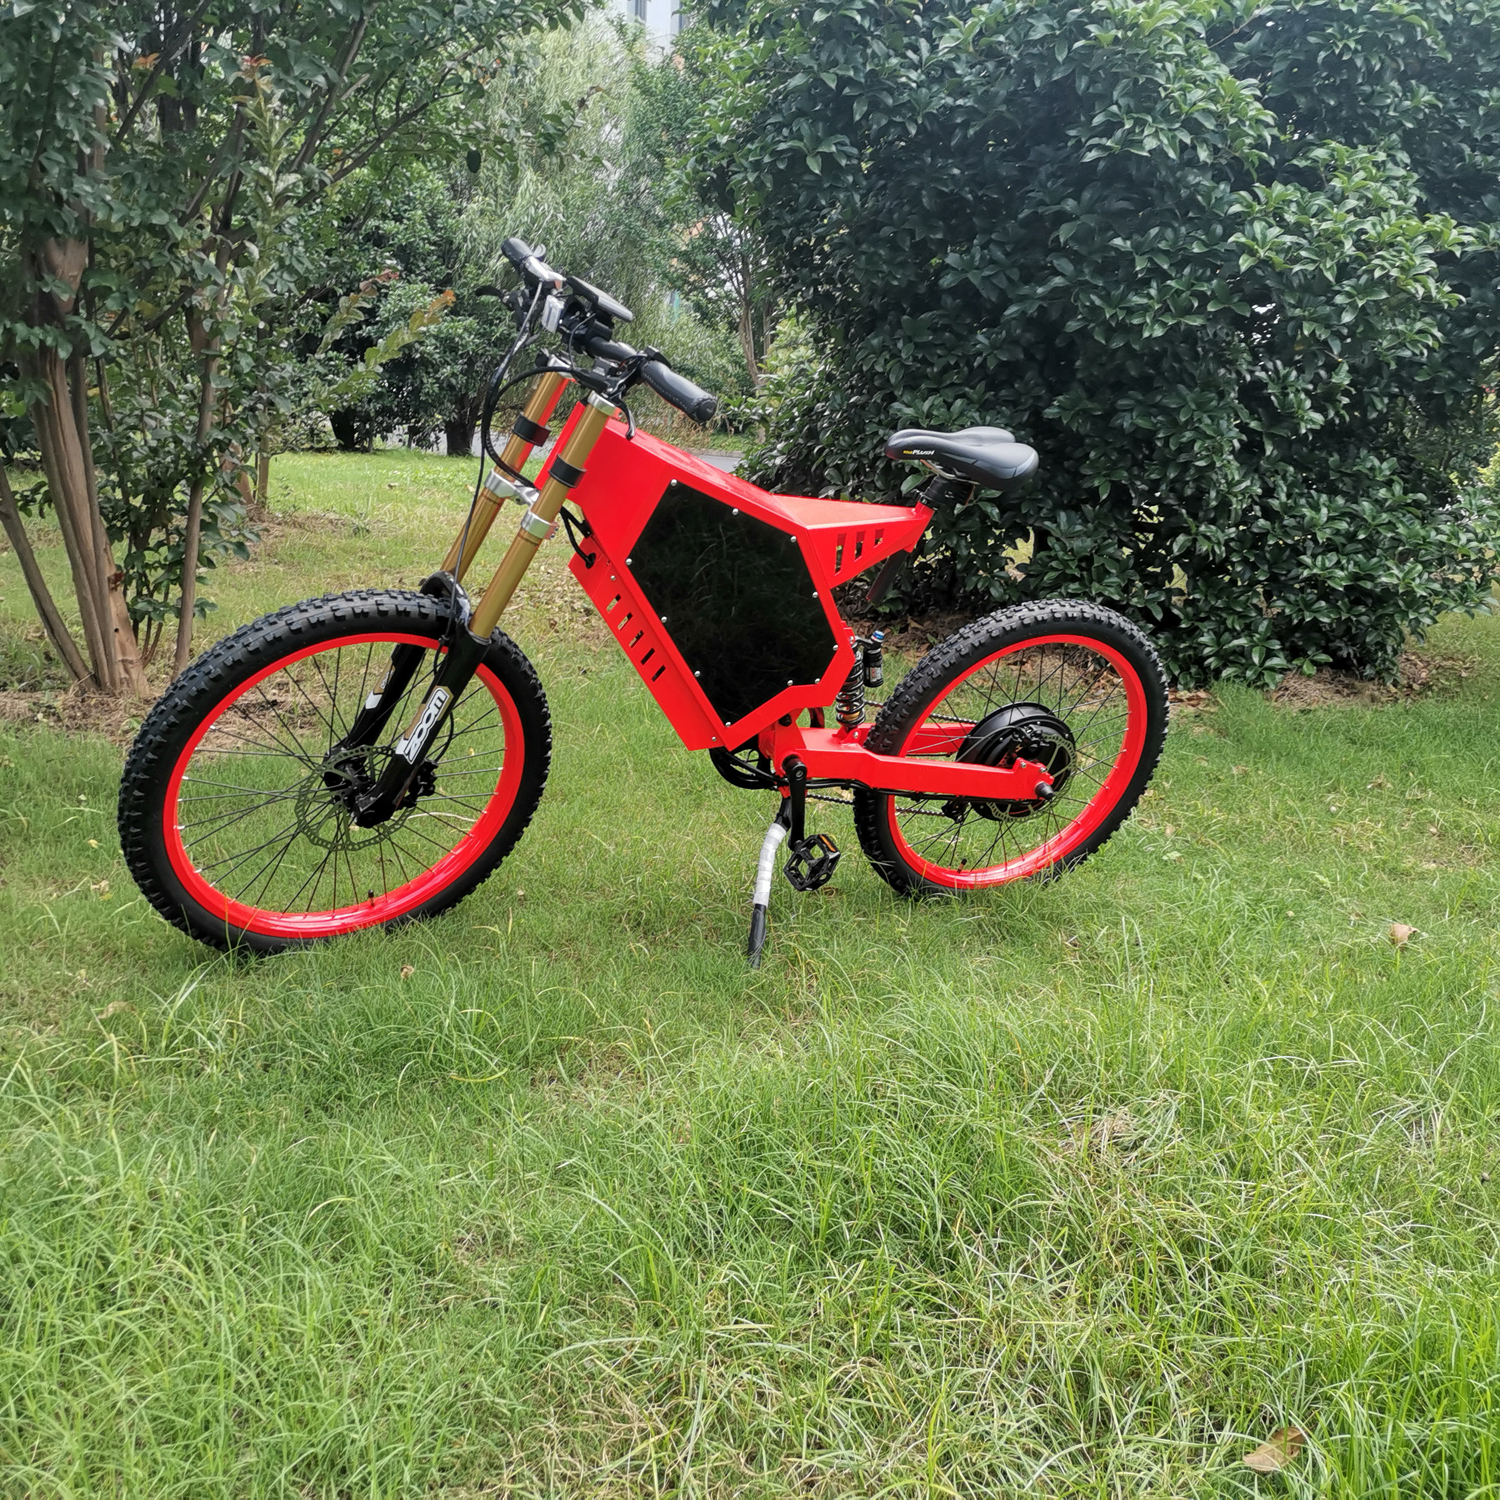 2020 new product adult electric bike with high power 8000w=12kw motor with lithium battery cheap electric motorcycle